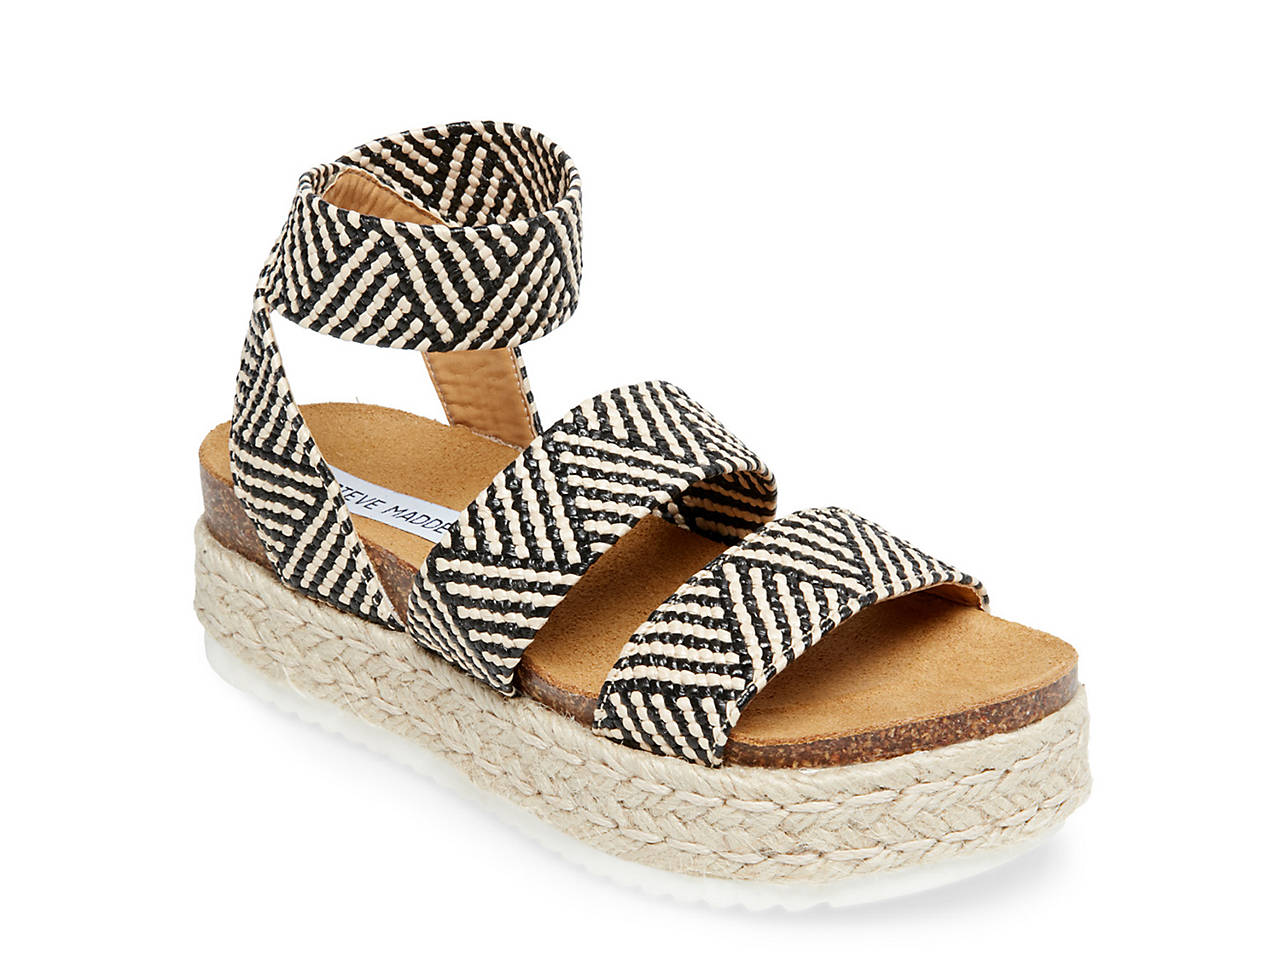 06470ac5bb4c Steve Madden Kimmie Espadrille Wedge Sandal Women s Shoes